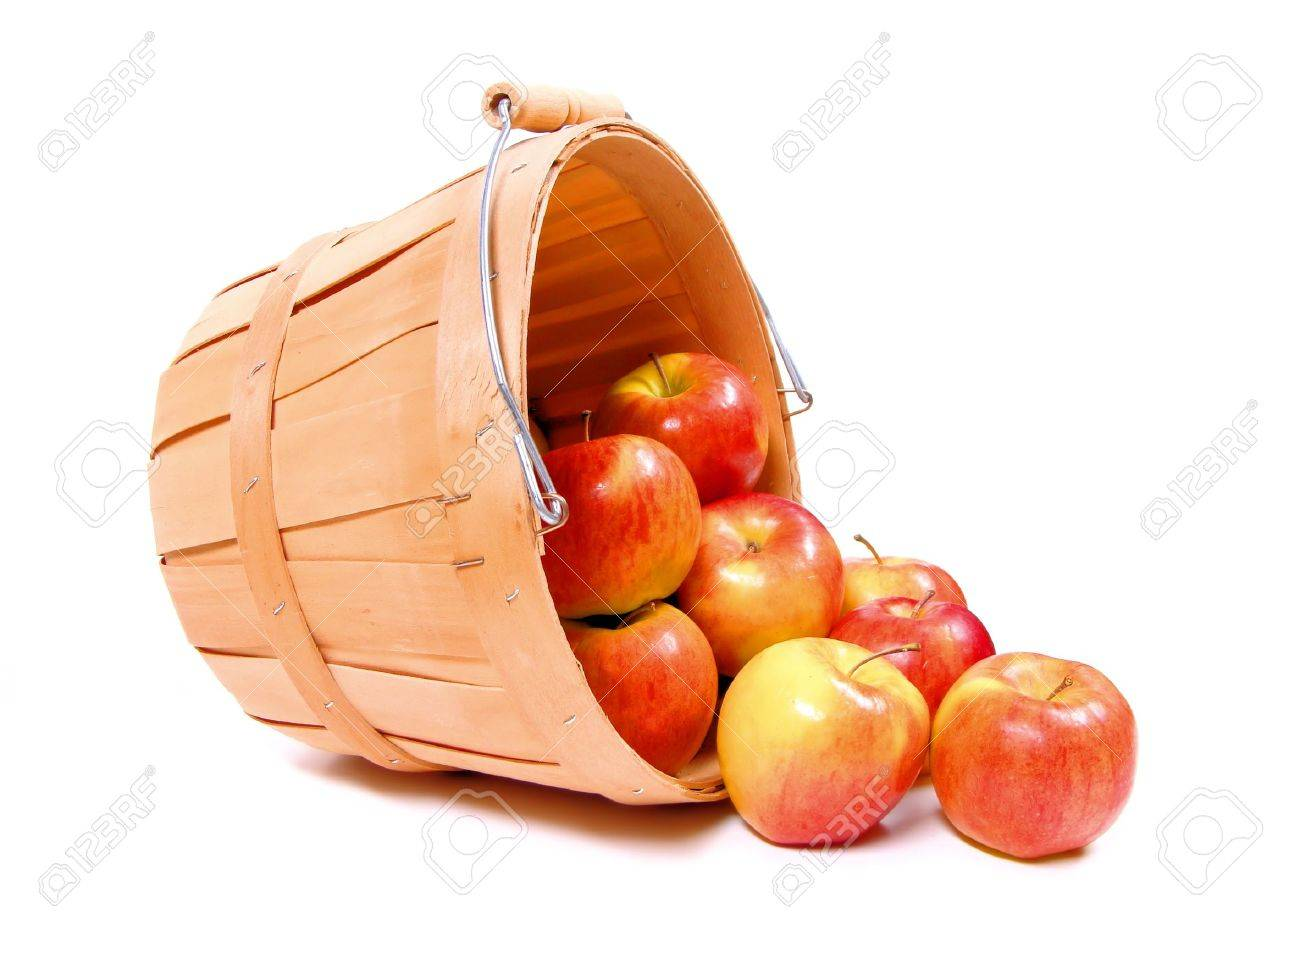 A group of apples spilling from a wooden farmer's basket Stock Photo - 8953733